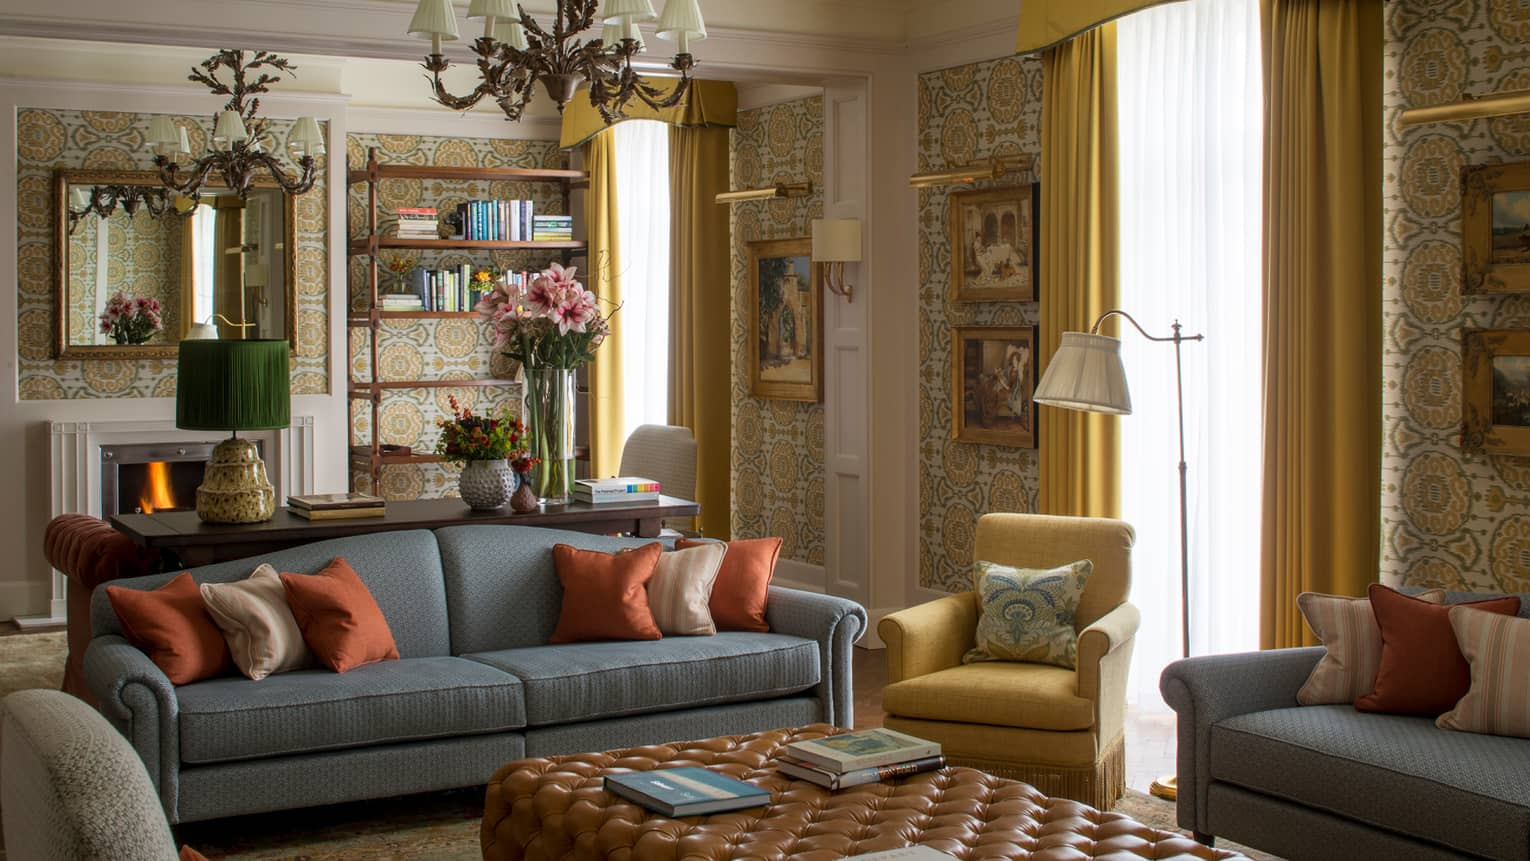 Royal Suite vintage wallpaper, gold-framed paintings, flowers around seating area